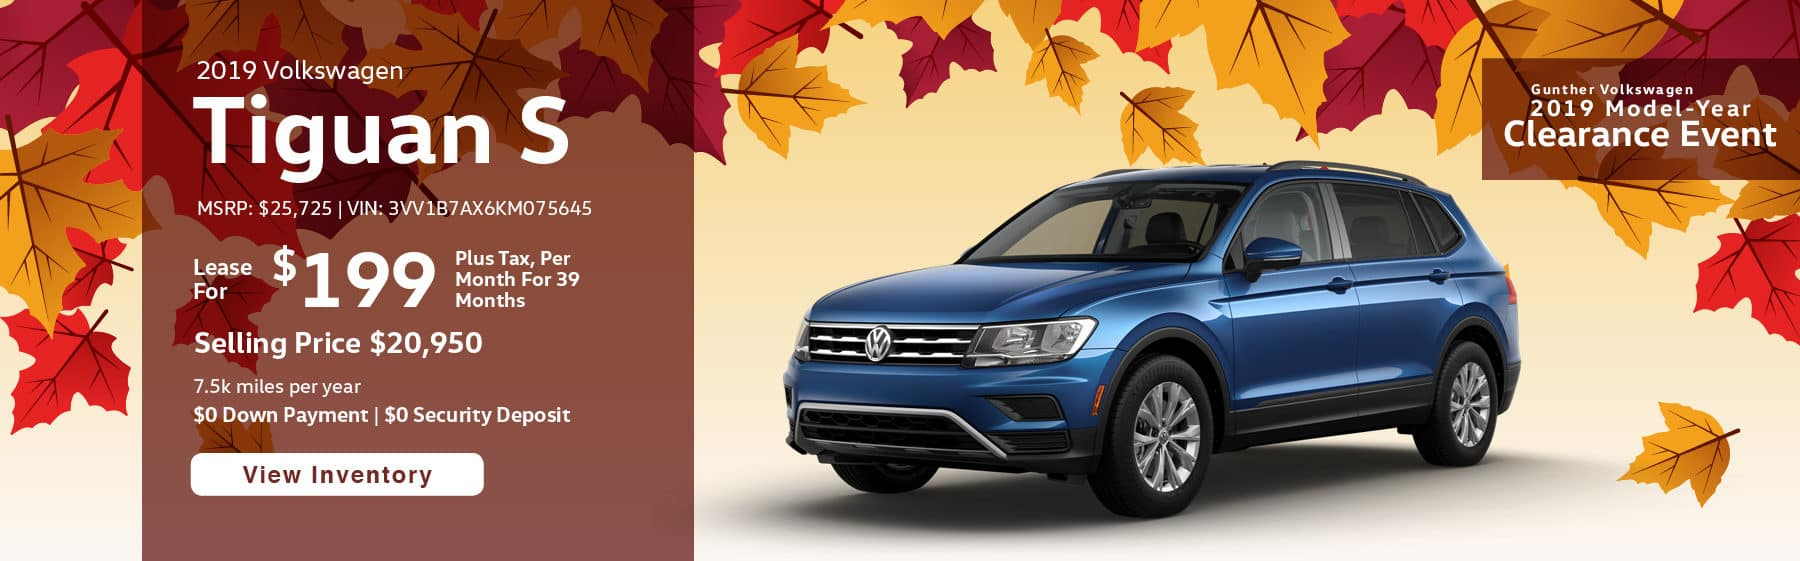 Lease the 2019 Tiguan S for $199 per month, plus tax for 39 months.